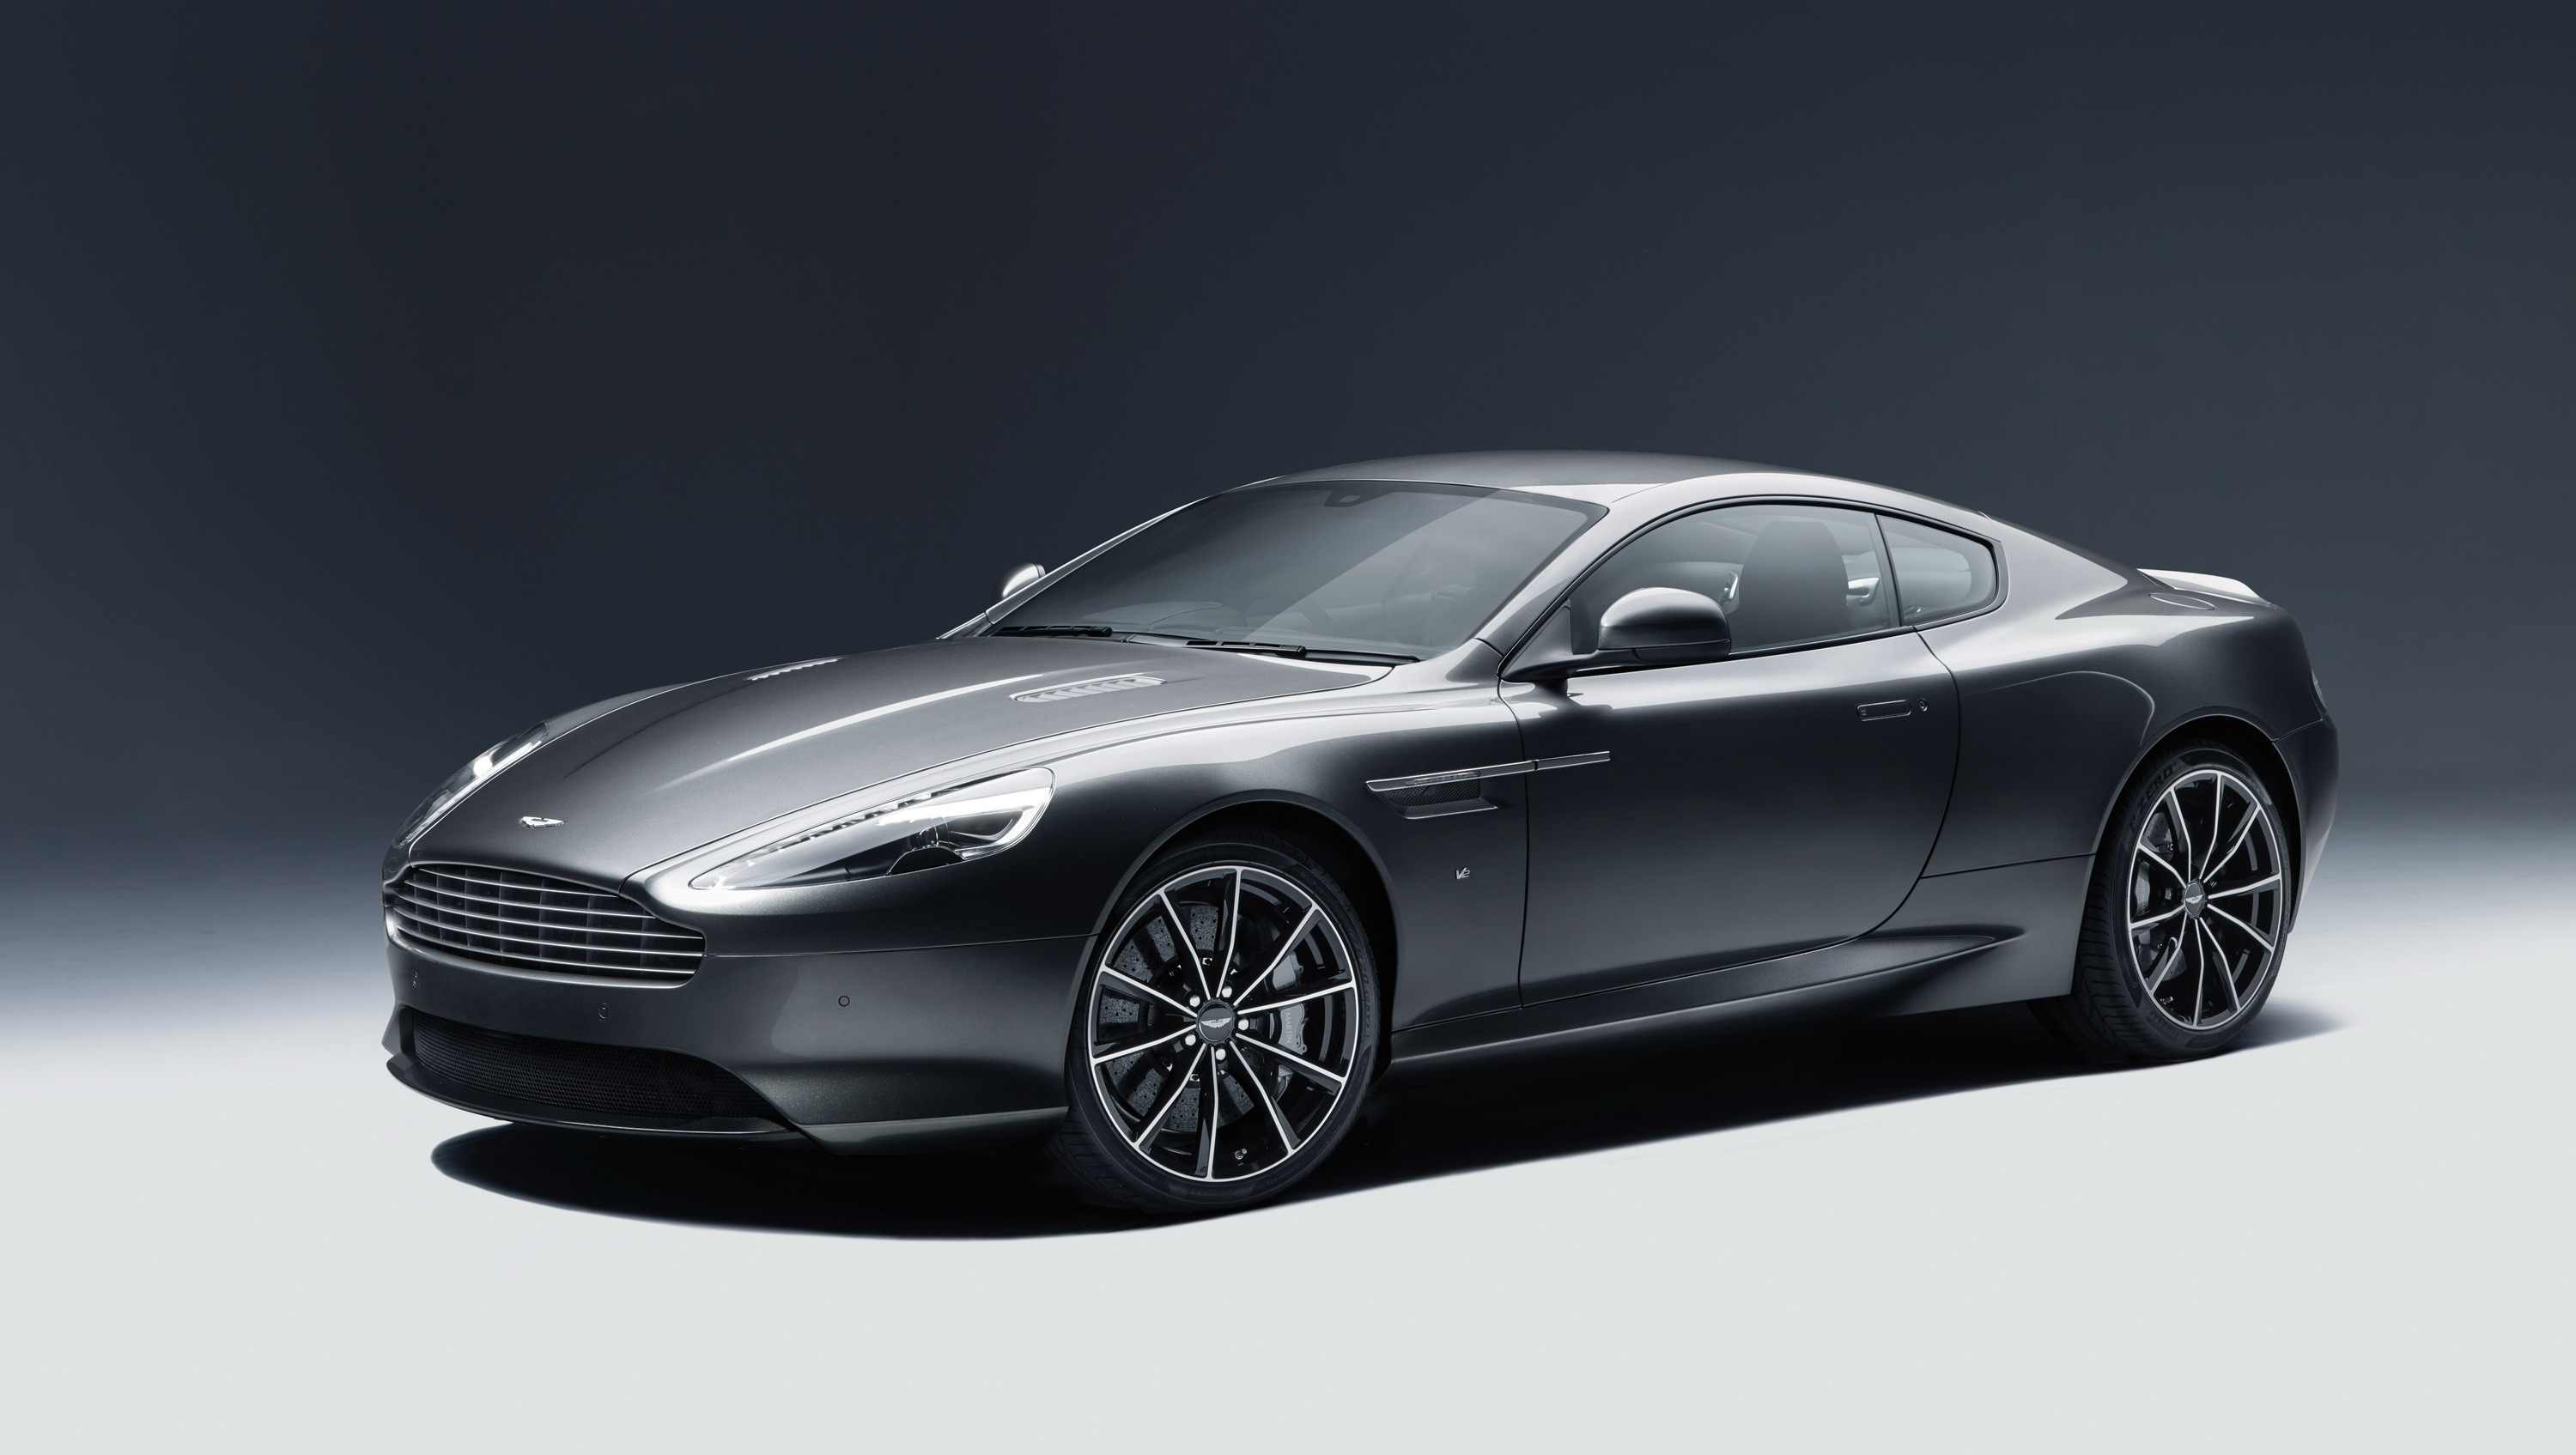 Aston Martin DB9 I Restyling 2 2012 - now Coupe #4